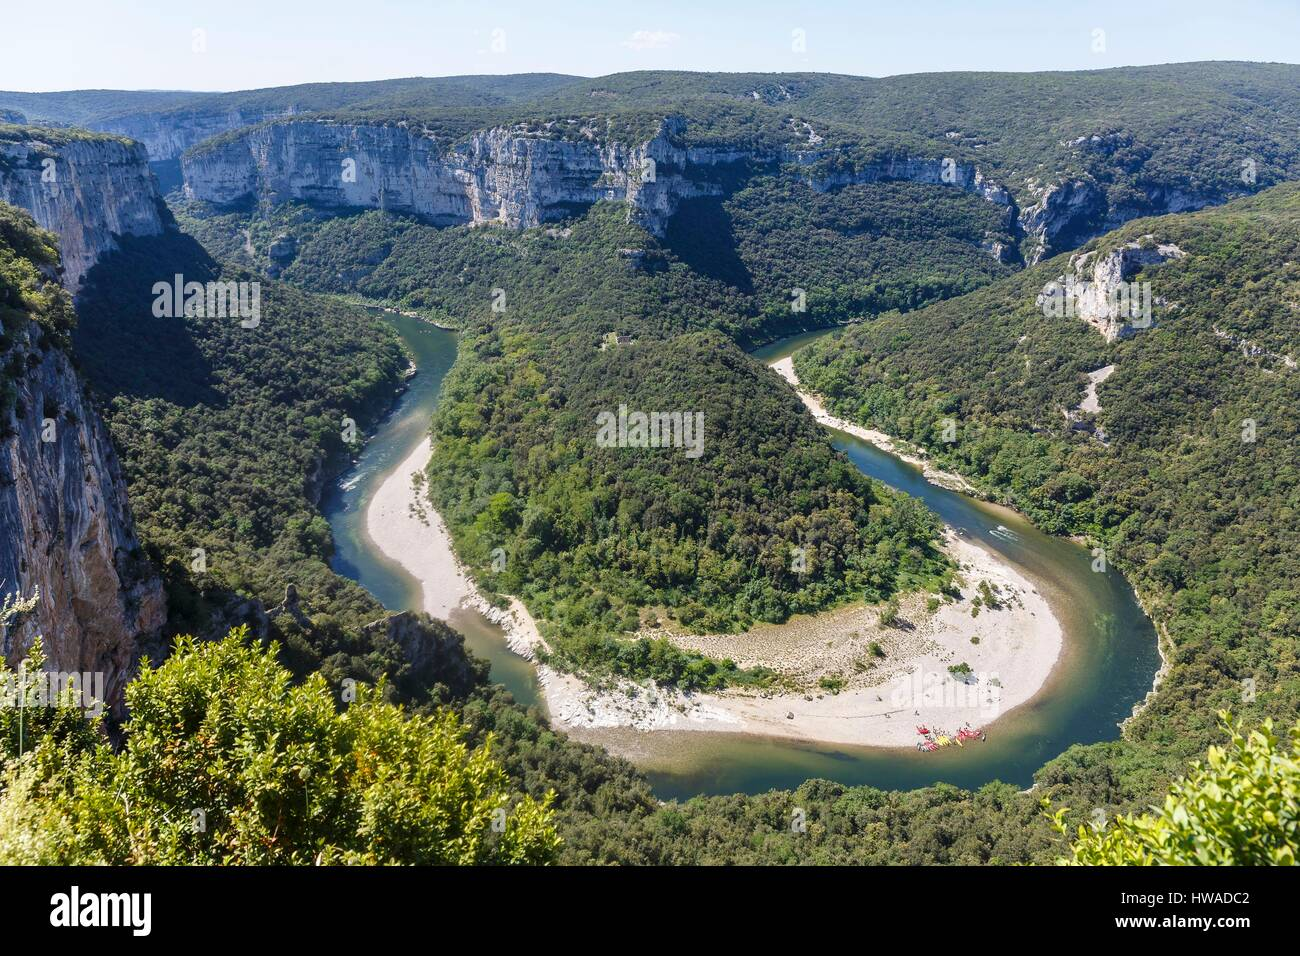 France, Ardeche, Saint Remeze, Ardeche gorges, view of the gorges from the templiers belvedere - Stock Image